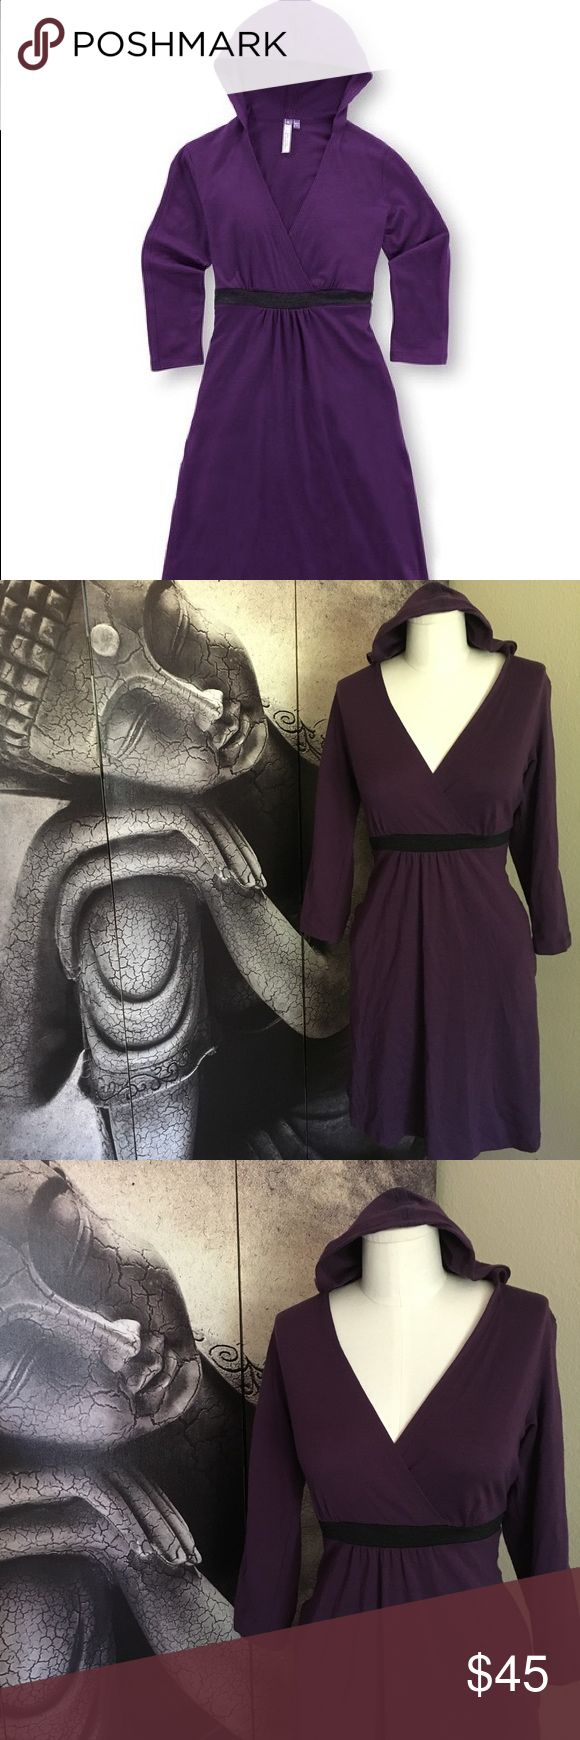 """ibex Slate Purple Indie Merino Wool Hooded Dress Cute women's sporty Indie dress by Ibex. Eggplant. 3/4 sleeves. Hooded. Convenient side seam pockets. Has stretch.   Measurements are approximate.  Laying flat:  Armpit to armpit: 14"""" Waist: 14"""" Length: 35"""" Fabric: Merino Wool Ibex Dresses Midi"""